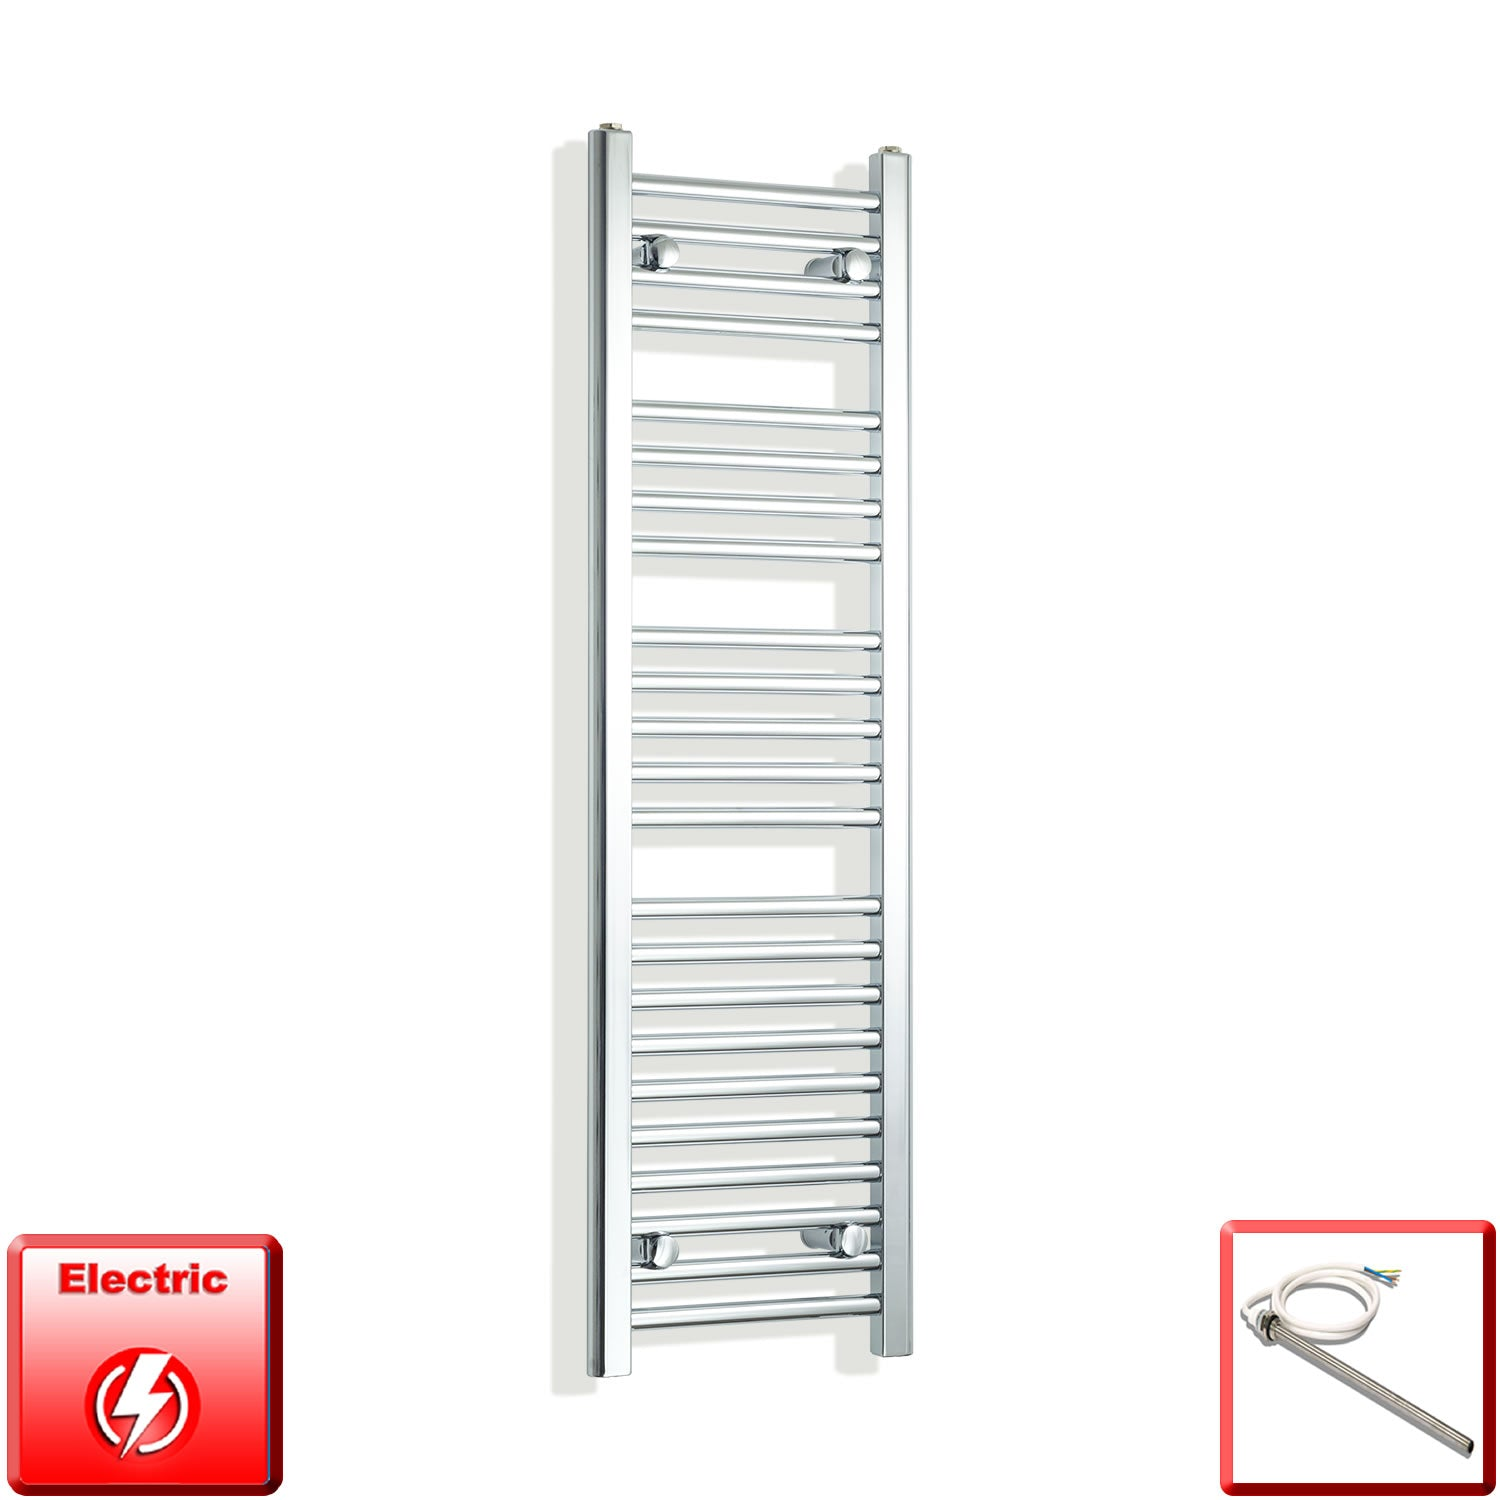 300mm Wide 1200mm High Flat Chrome Pre-Filled Electric Heated Towel Rail Radiator HTR,Single Heat Element